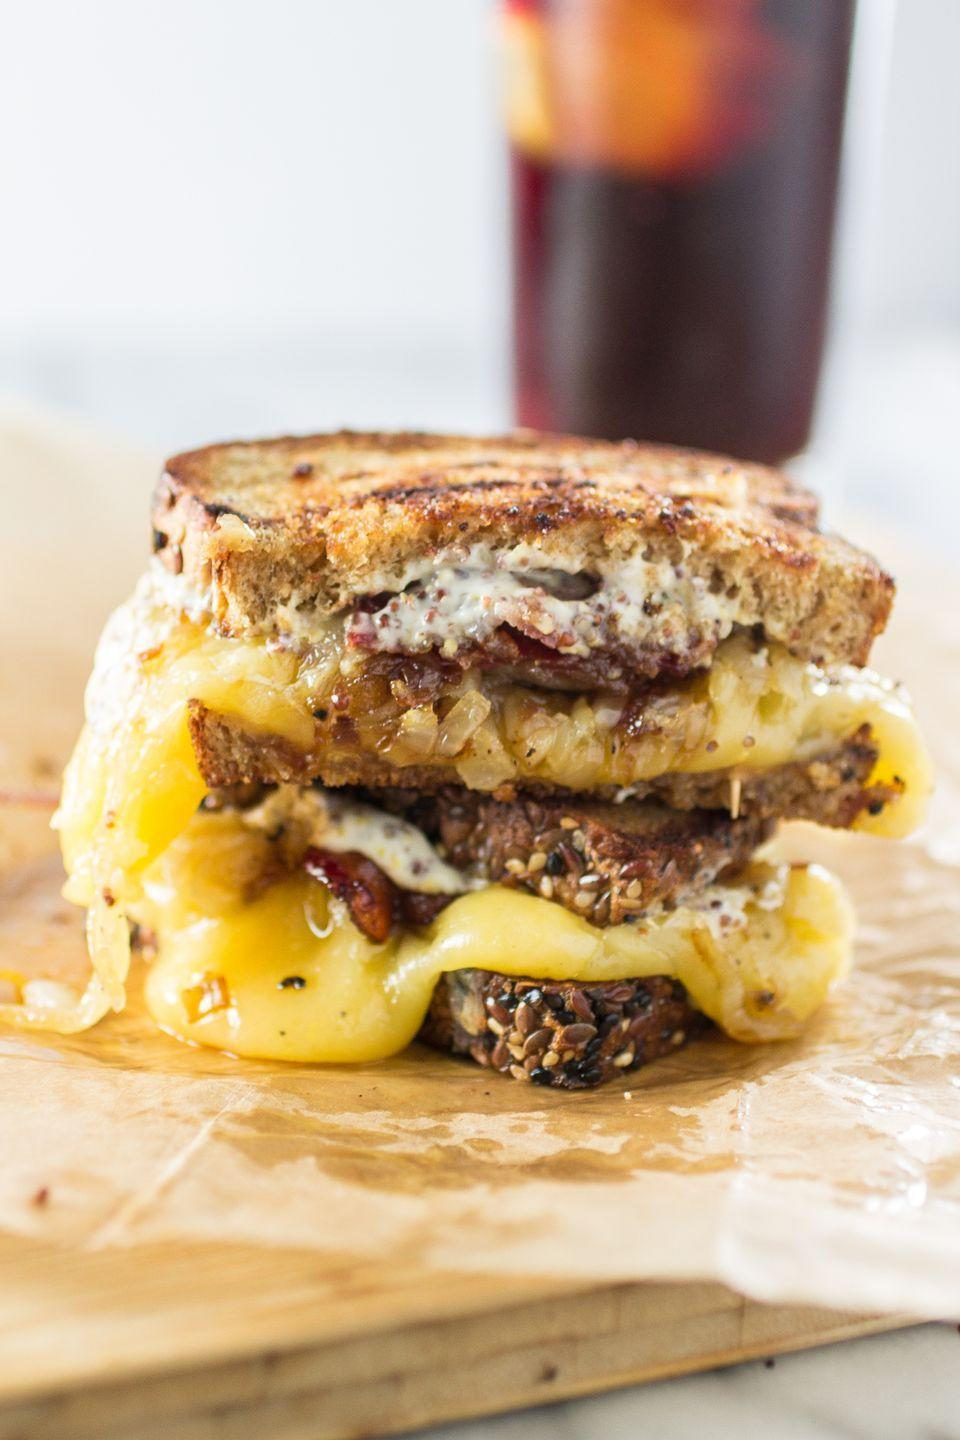 """<p>With gouda, caramelized onions, and maple whiskey bacon, this is one statement-making grilled cheese sandwich.</p><p>Get the recipe from <a href=""""http://www.oliviascuisine.com/trainwreck-grilled-cheese/"""" rel=""""nofollow noopener"""" target=""""_blank"""" data-ylk=""""slk:Olivia's Cuisine"""" class=""""link rapid-noclick-resp"""">Olivia's Cuisine</a>.</p>"""